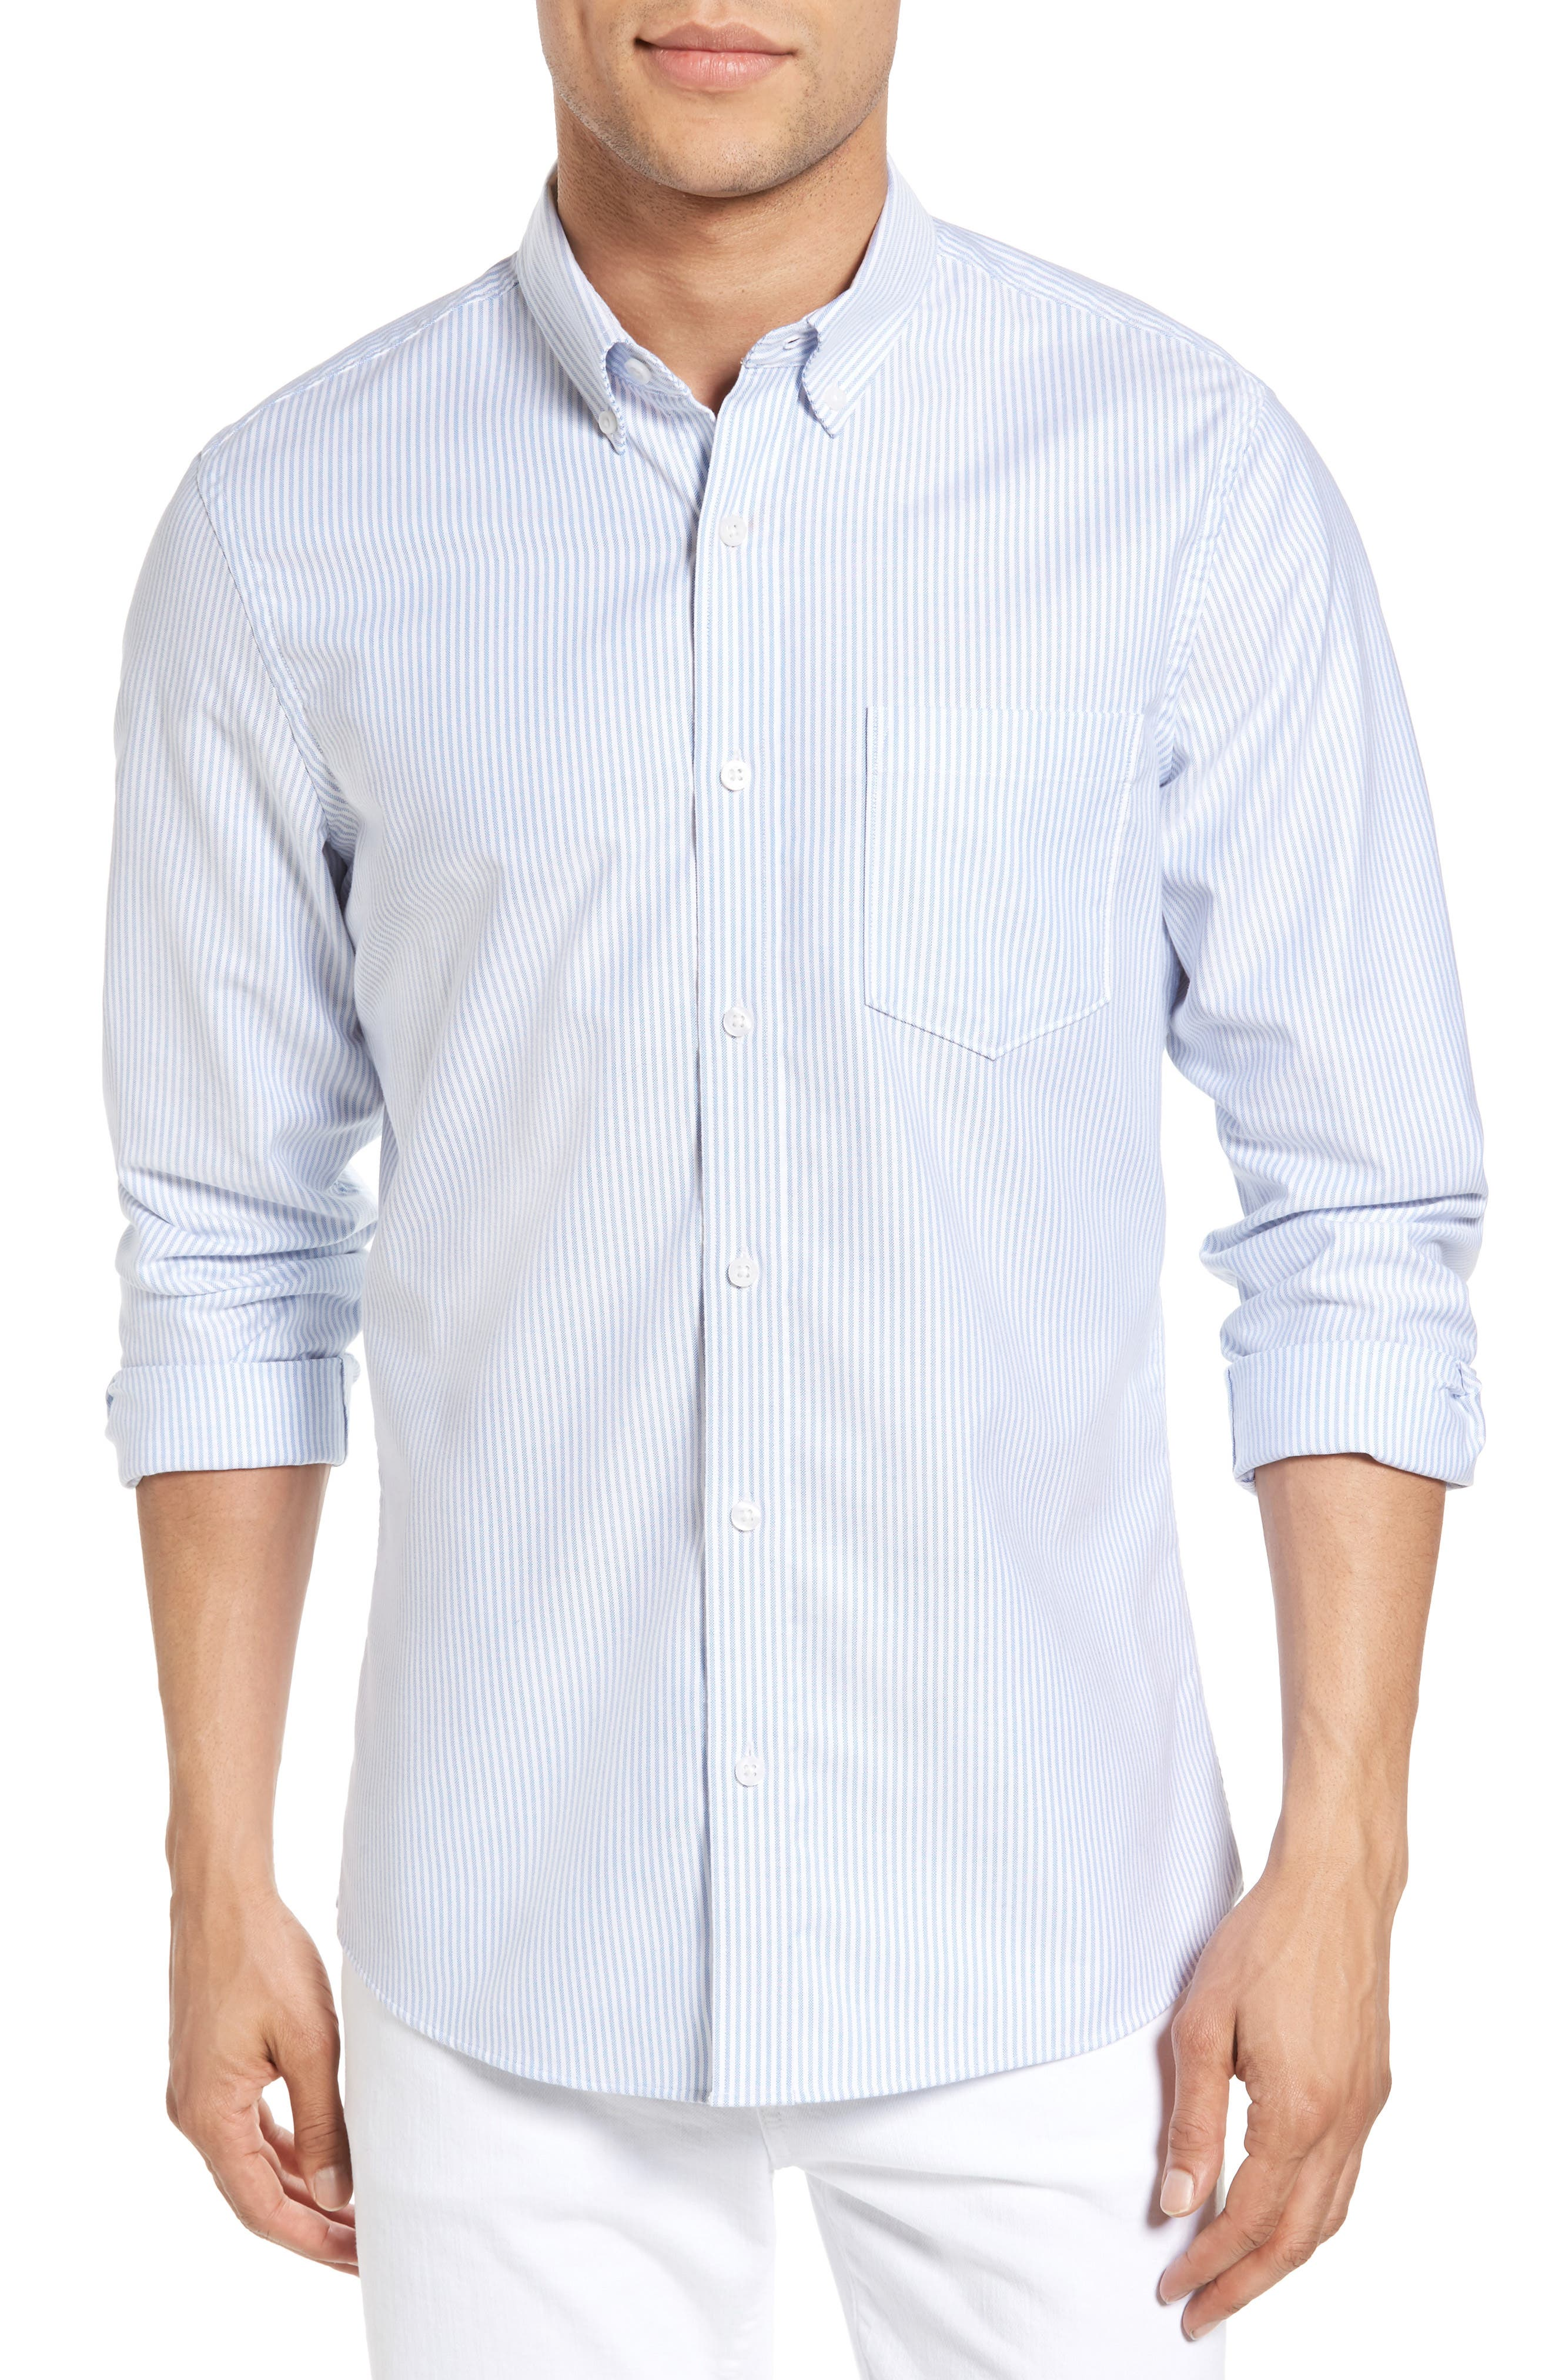 Alternate Image 1 Selected - 1901 Trim Fit Bengal Stripe Sport Shirt